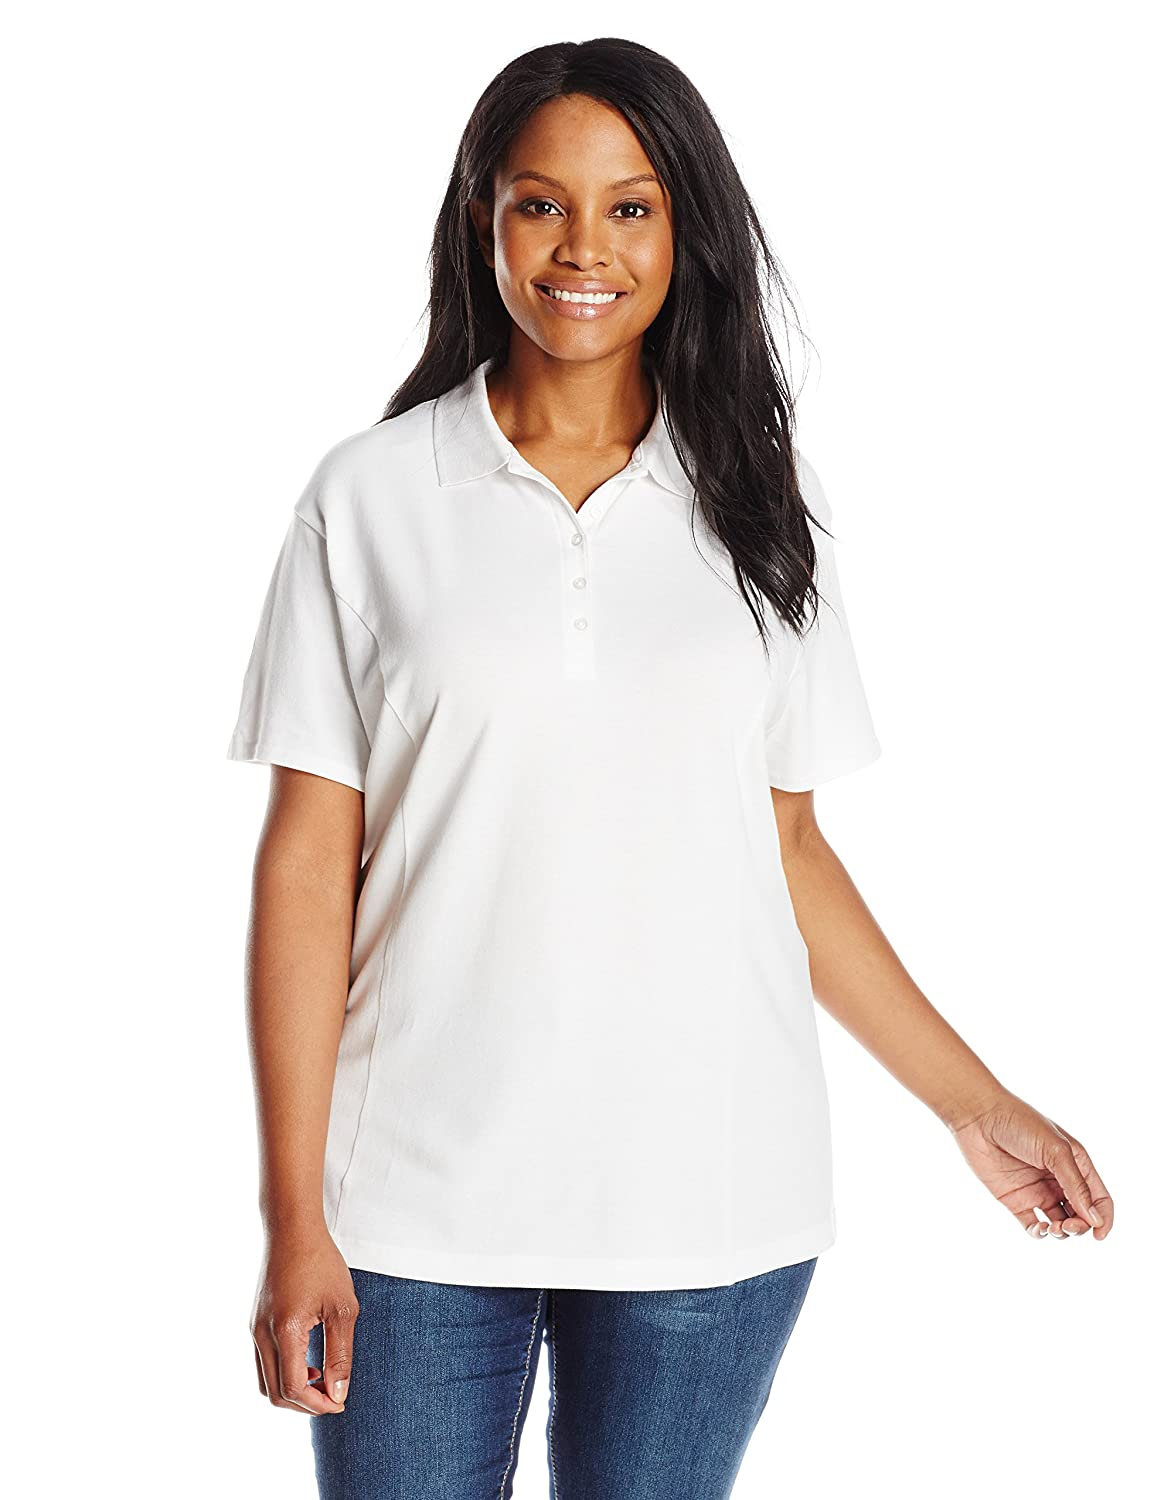 Riders by Lee Indigo Women's Plus Size Morgan Short Sleeve Polo Shirt ZFMK2X